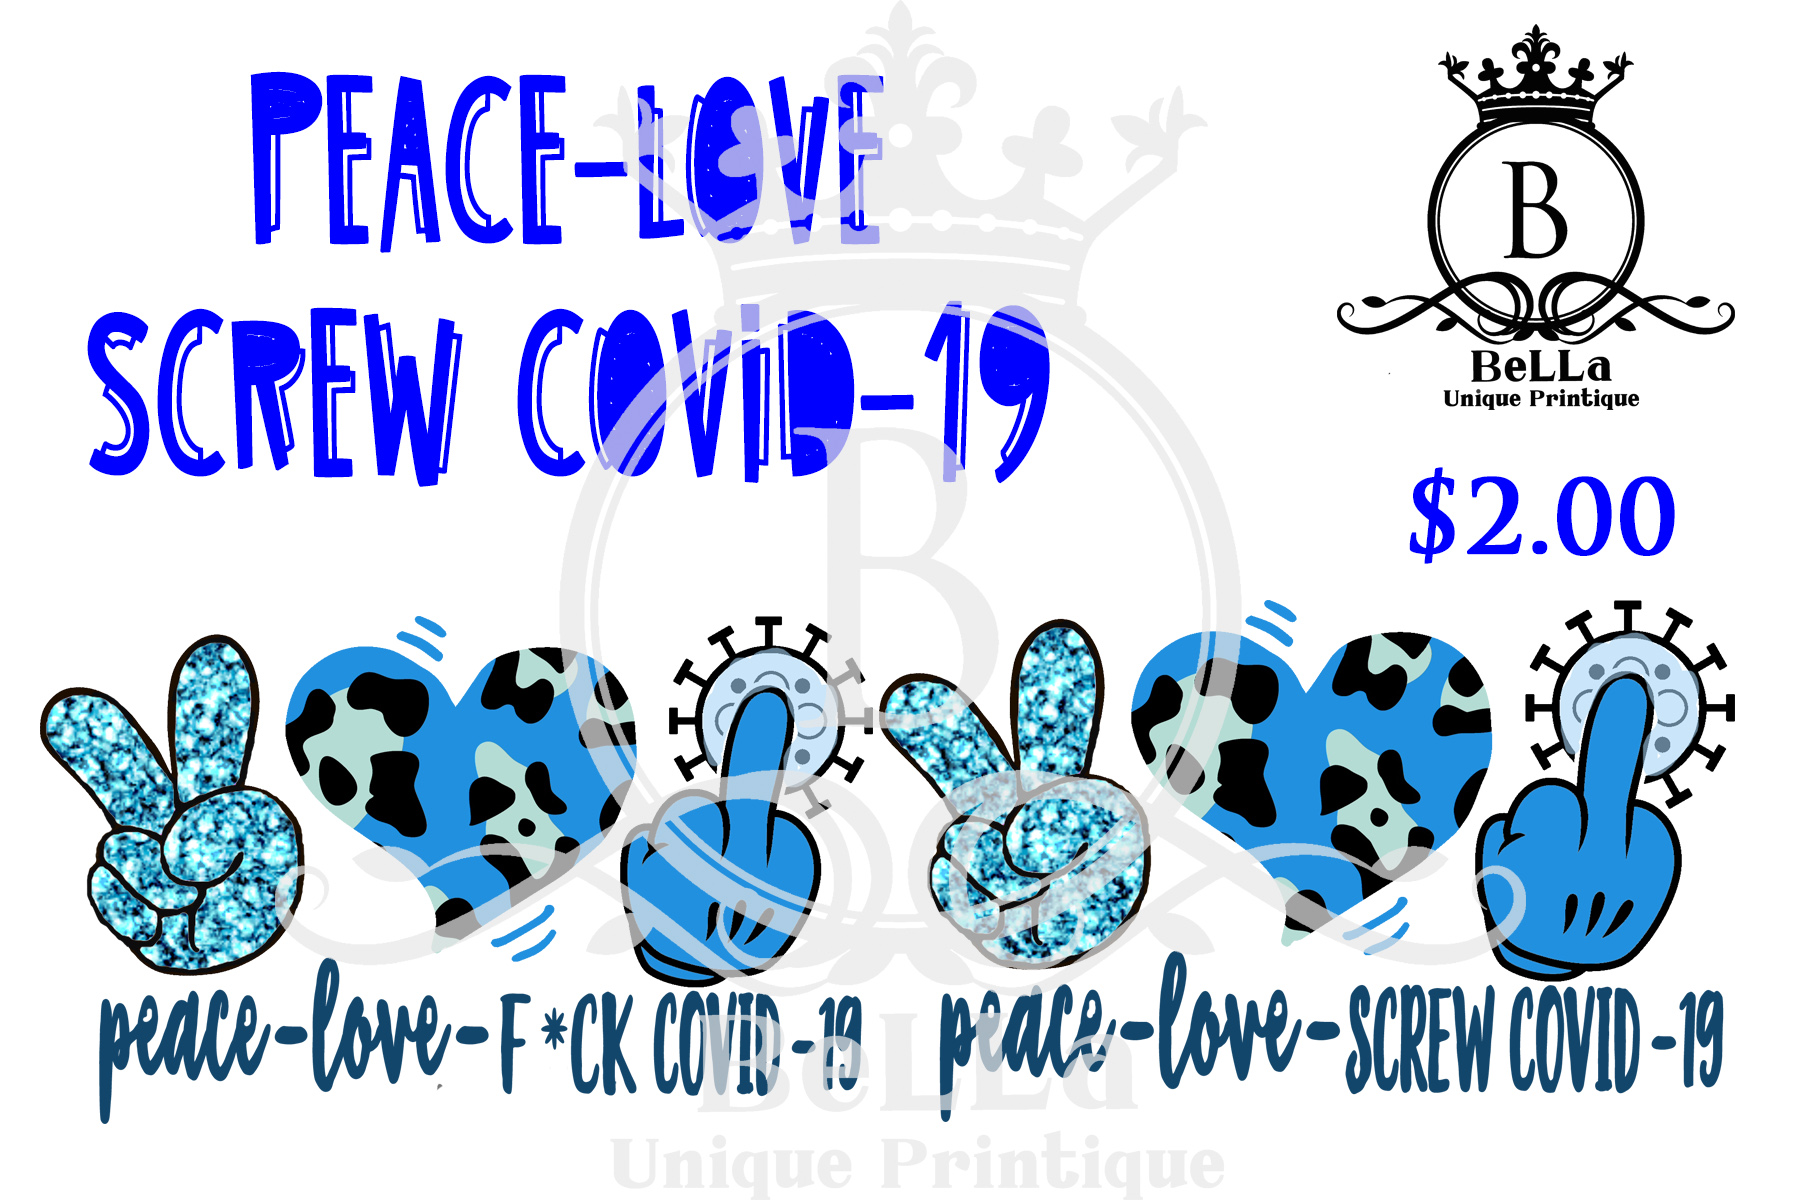 Download Free Peace Love Screw Covid 19 Blue Graphic By Bellauniqueprintique for Cricut Explore, Silhouette and other cutting machines.